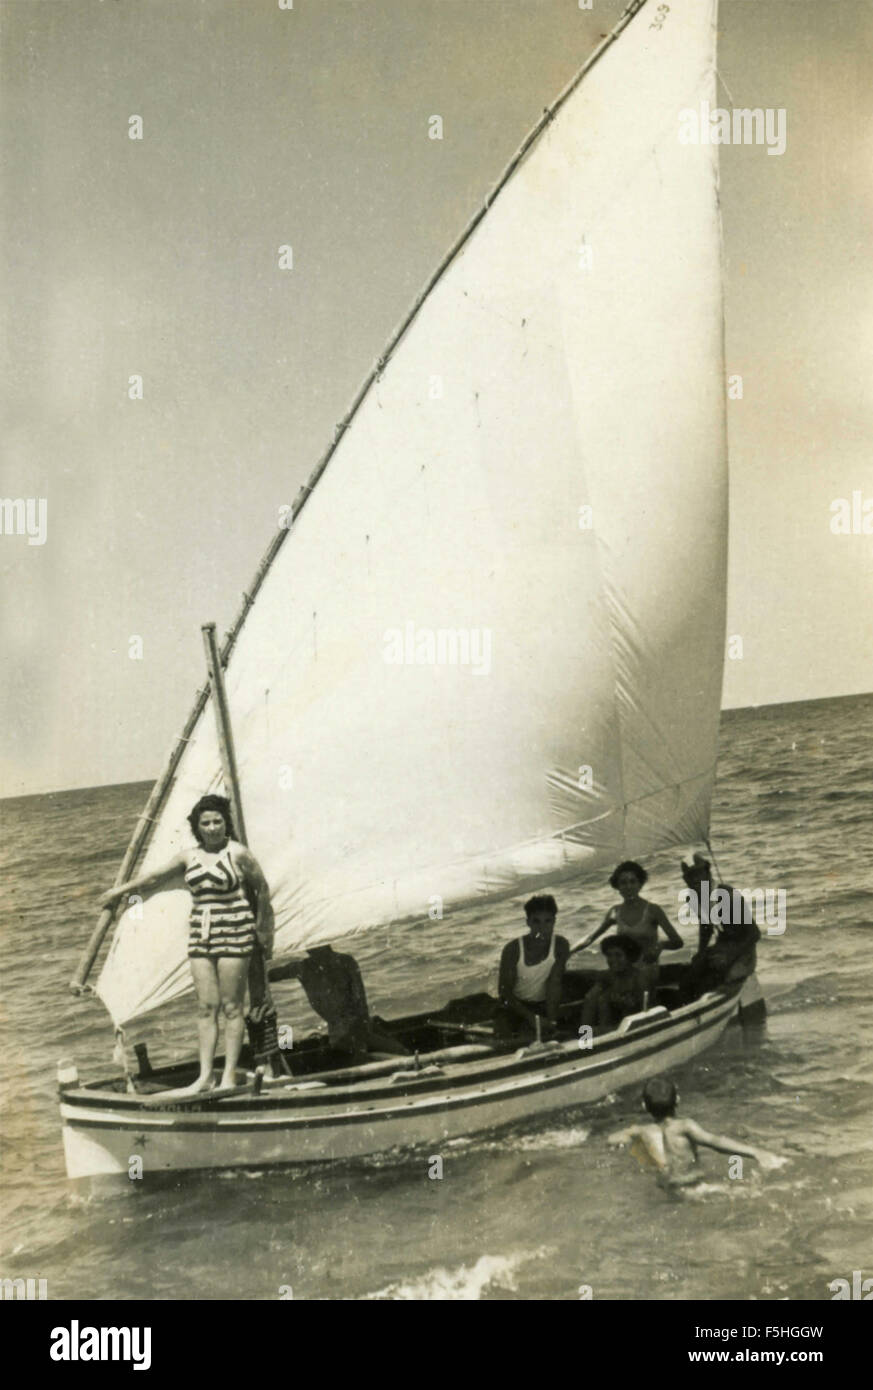 Little family boat with sail Latin, Italian - Stock Image